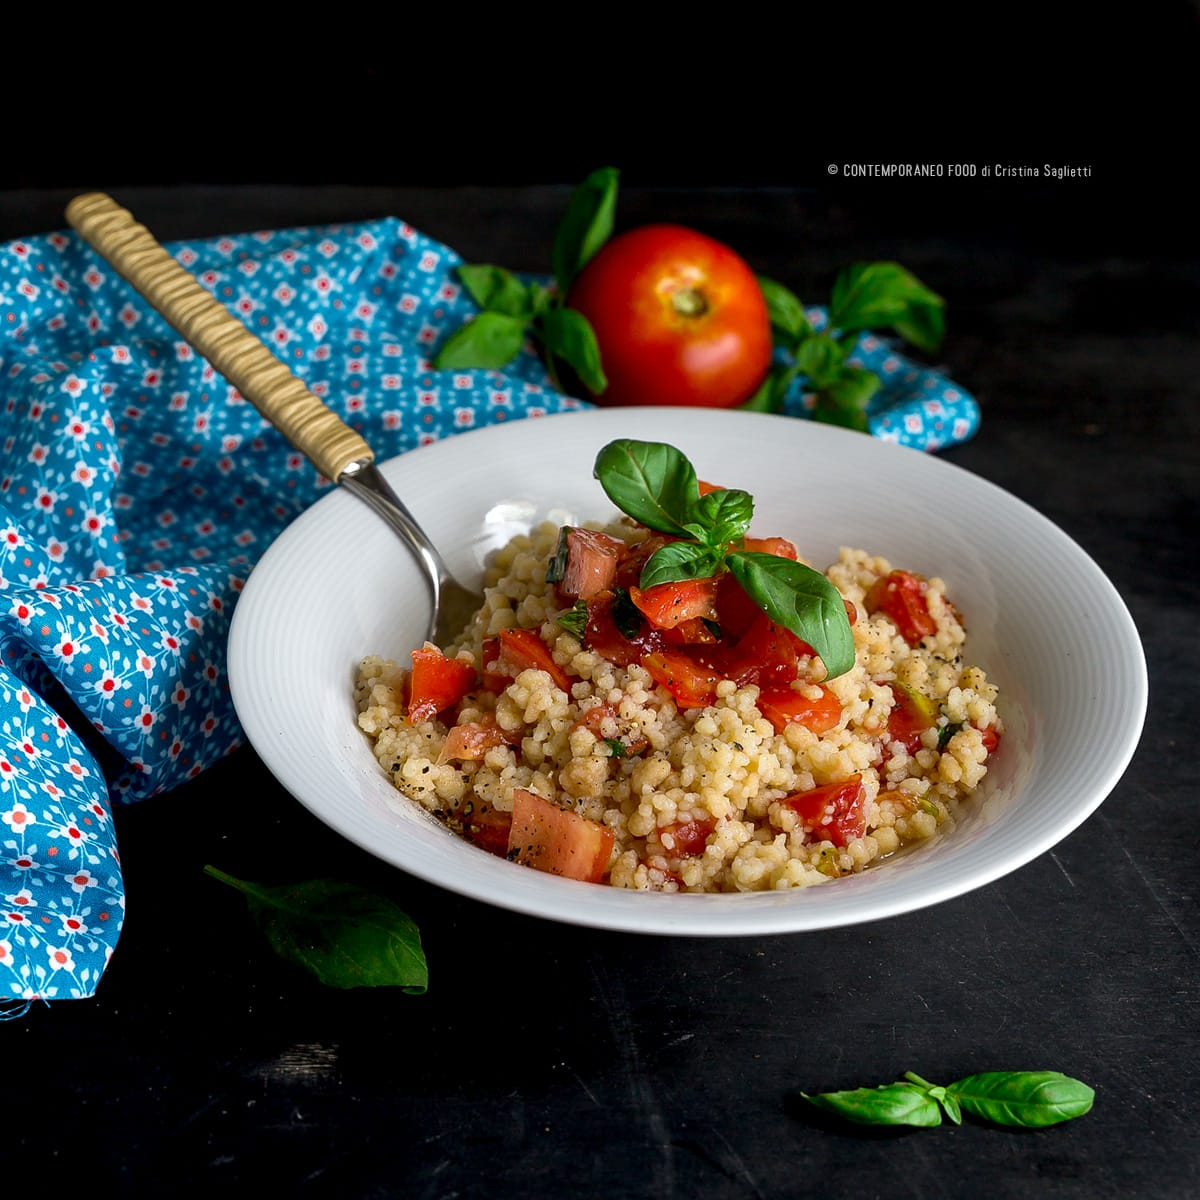 fregola-con pomodoro-basilico-ricetta-primi-estate-facile-light-dieta-contemporaneo-food